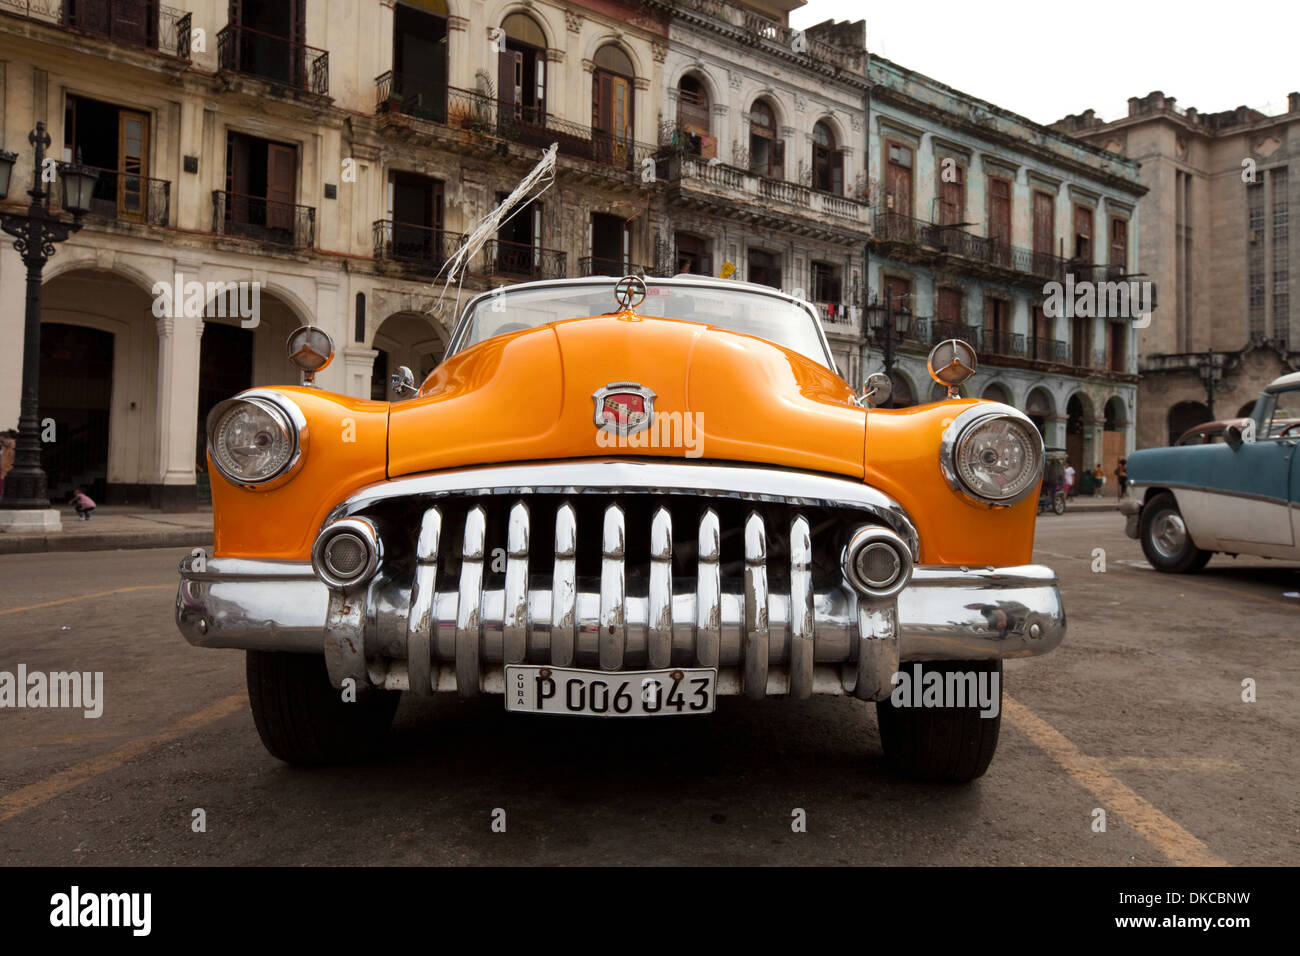 front-of-classic-old-american-vintage-car-havana-cuba-caribbean-DKCBNW.jpg